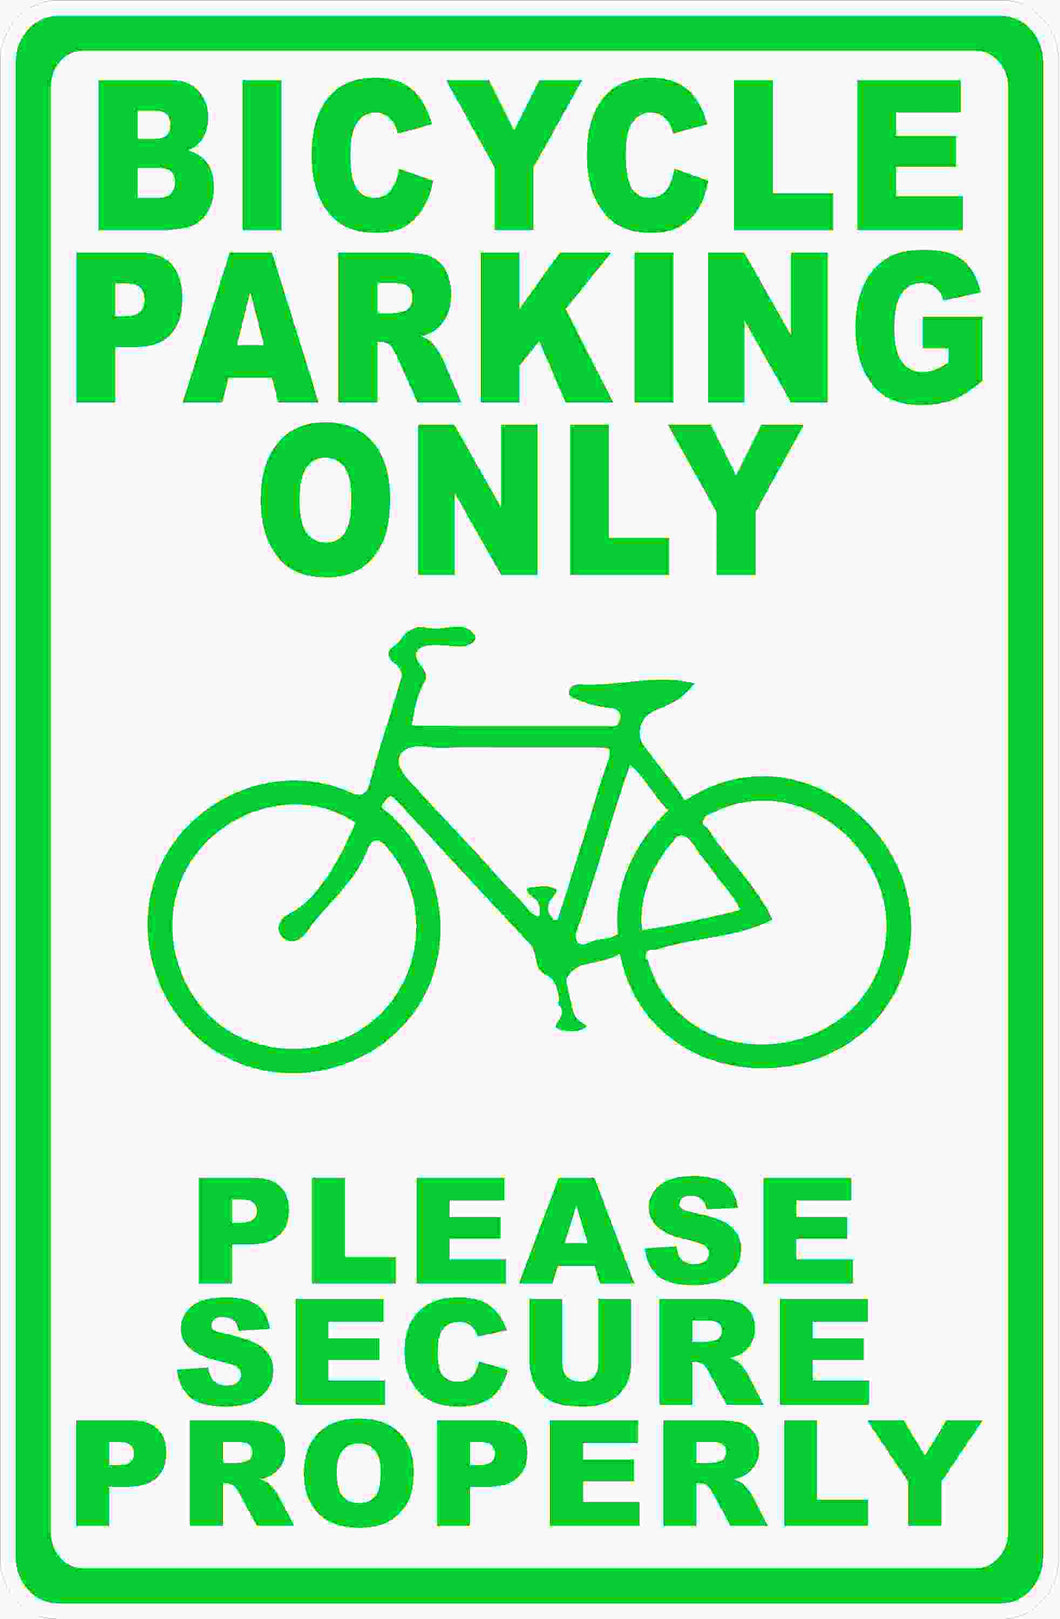 Bike Parking Only Sign by Sala Graphics